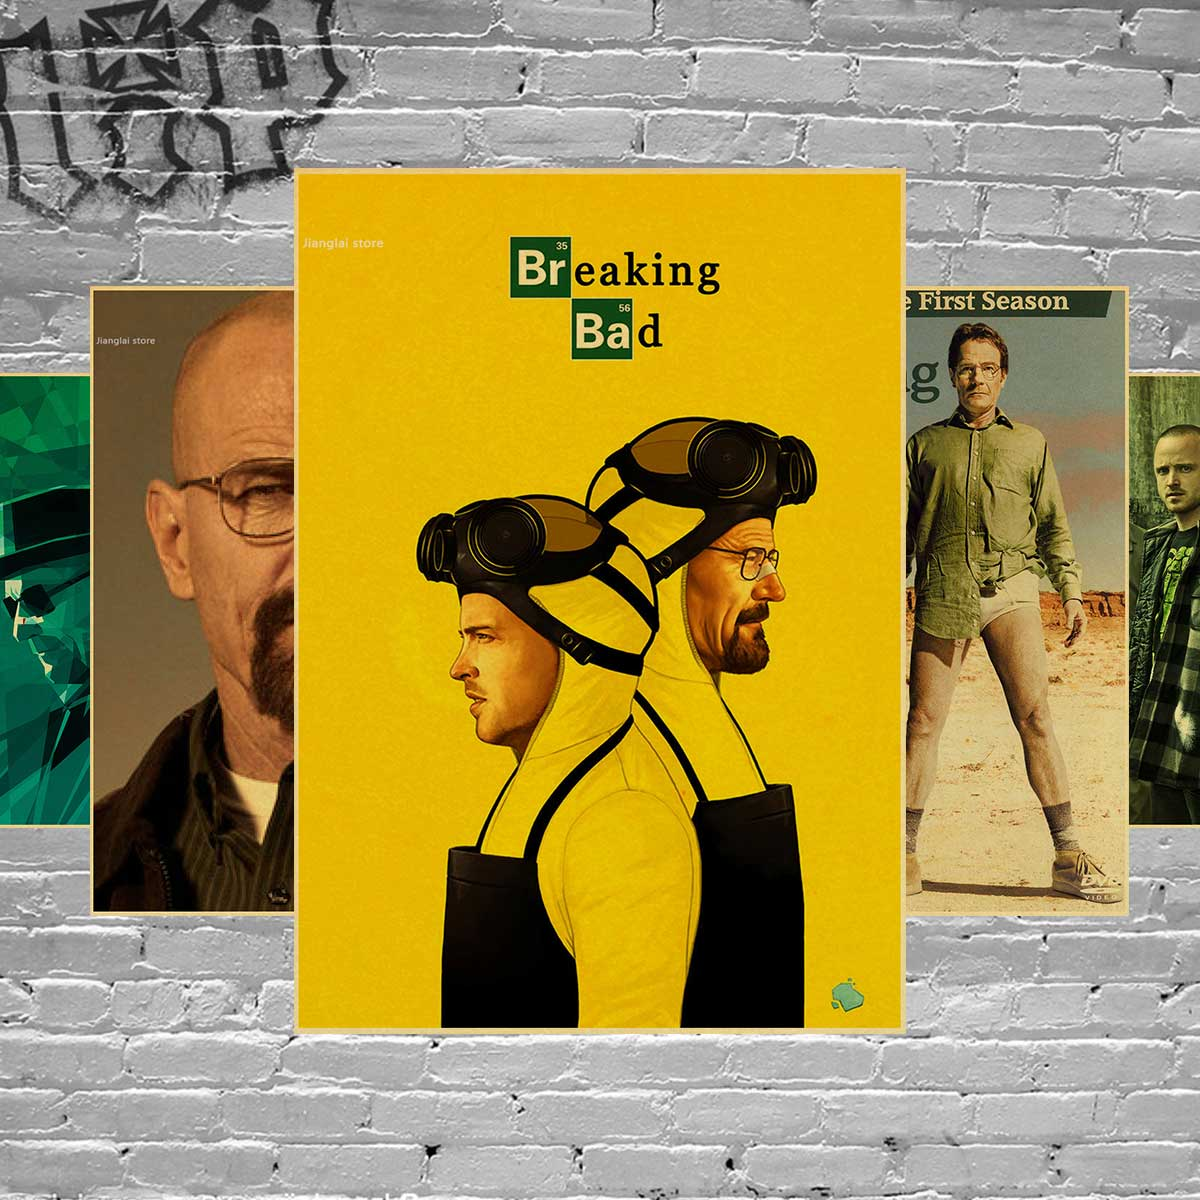 Wall stickers home decor Wall poster Breaking Bad vintage poster retro Walter White posters american TV series-in Wall Stickers from Home & Garden